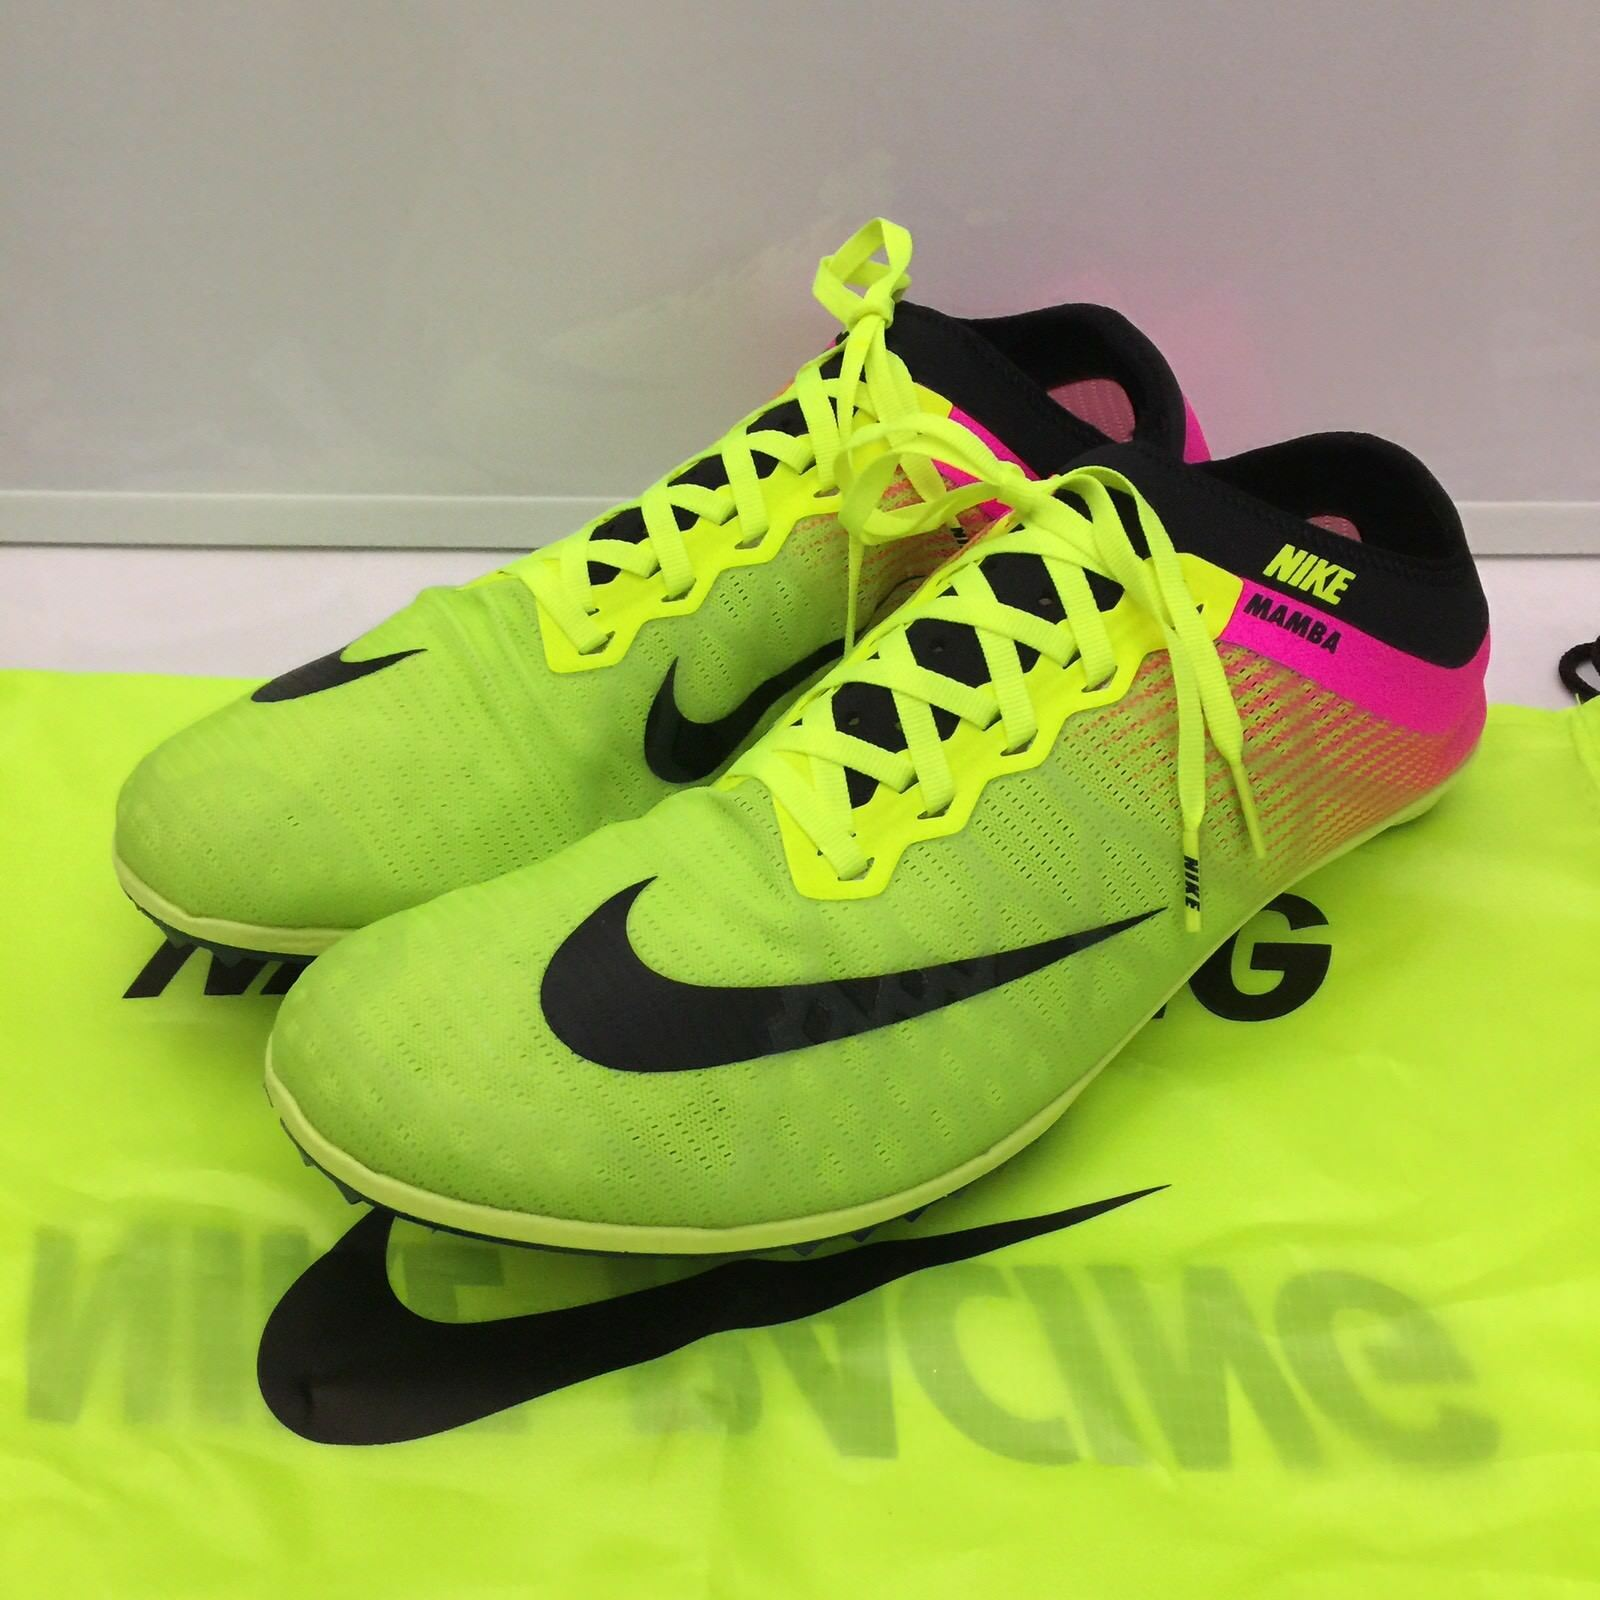 NIKE ZOOM MAMBA 3 OC RIO RACING TRACK SPIKES VOLT BLACK PINK Price reduction Price reduction Seasonal clearance sale